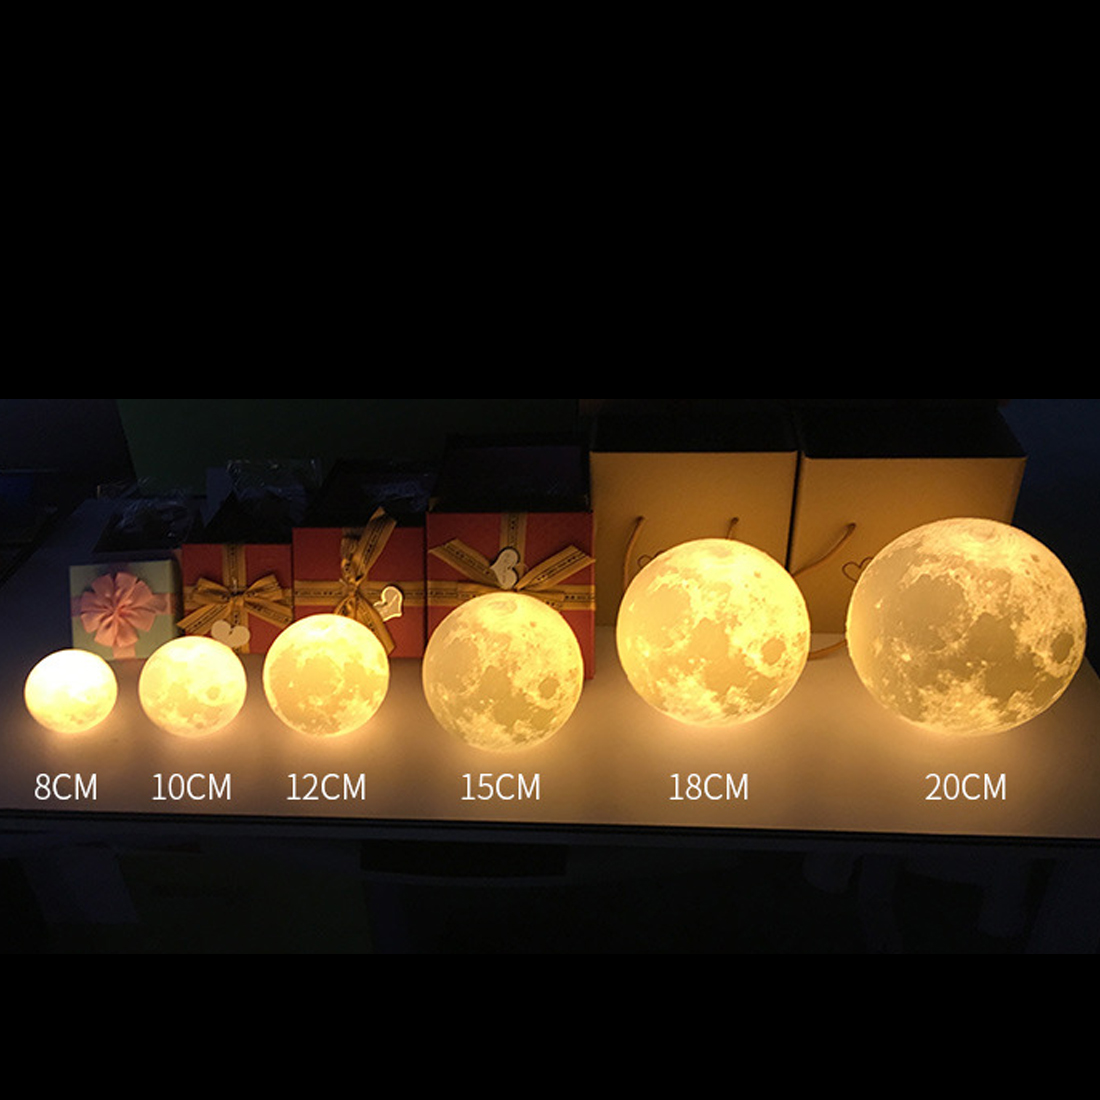 3D Printing Moon Light Customized Personality Lunar USB Charging Night Lamp Touch Control Dim Brightness Touch Switch